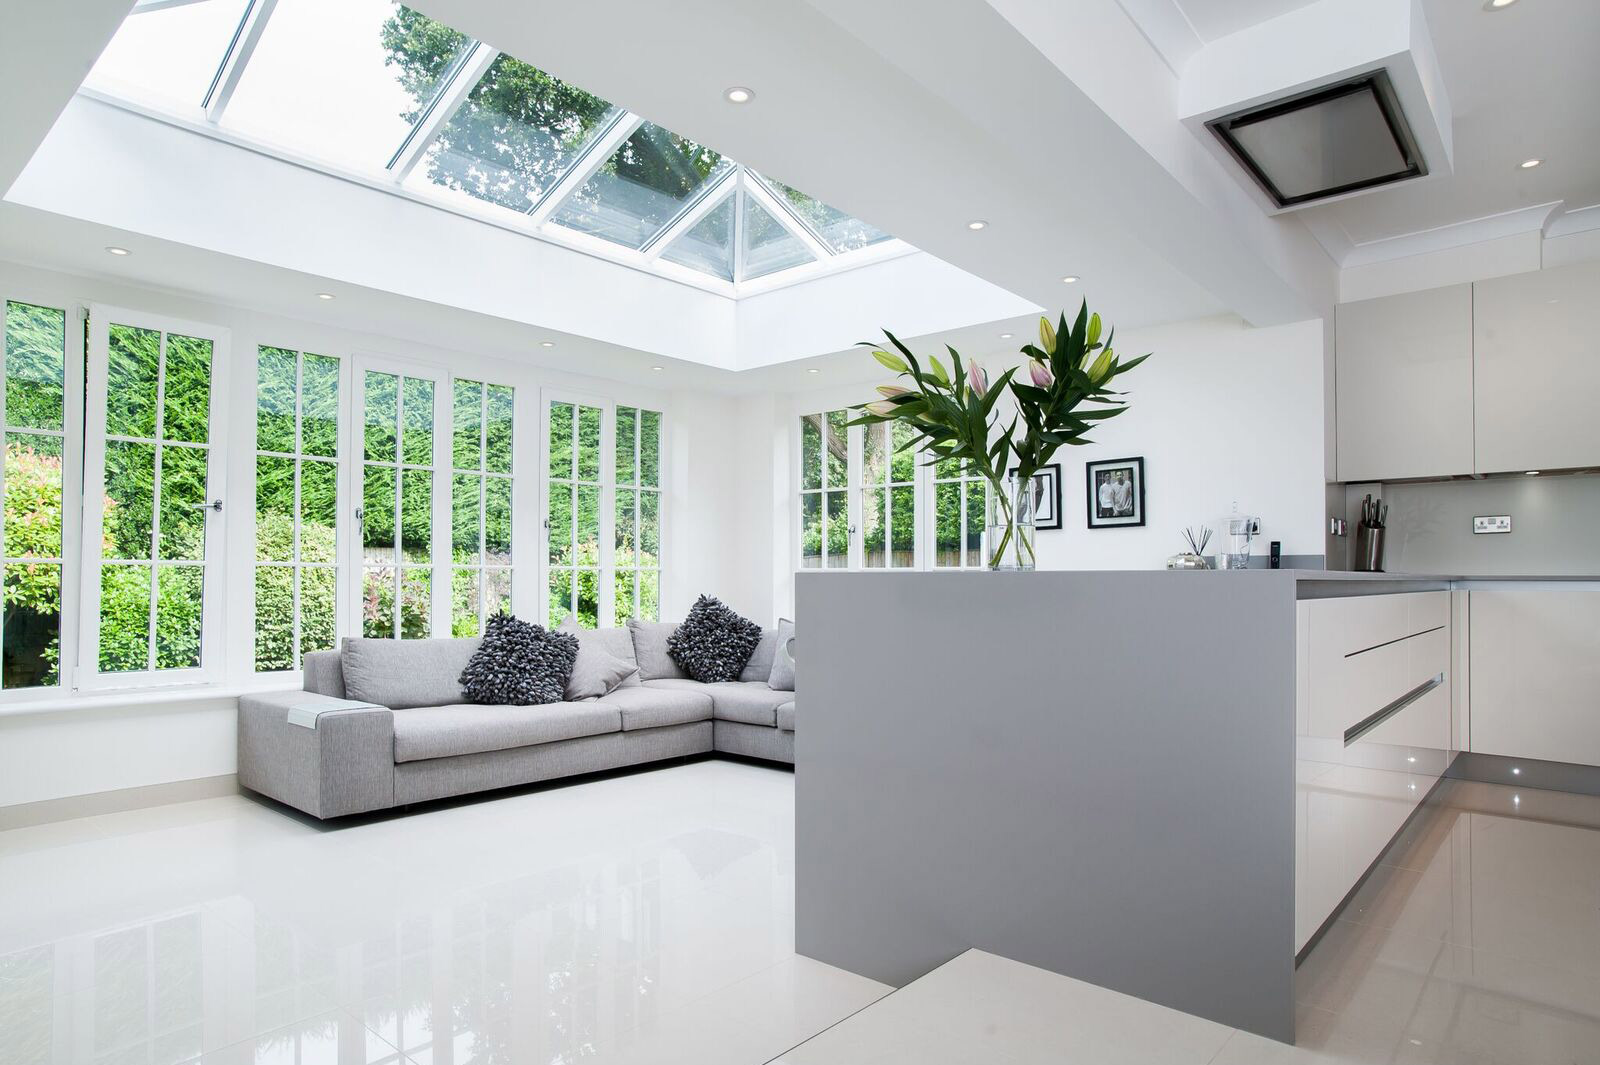 Berkshire Suppliers Of Atlas Glass Domed Roof Lanterns